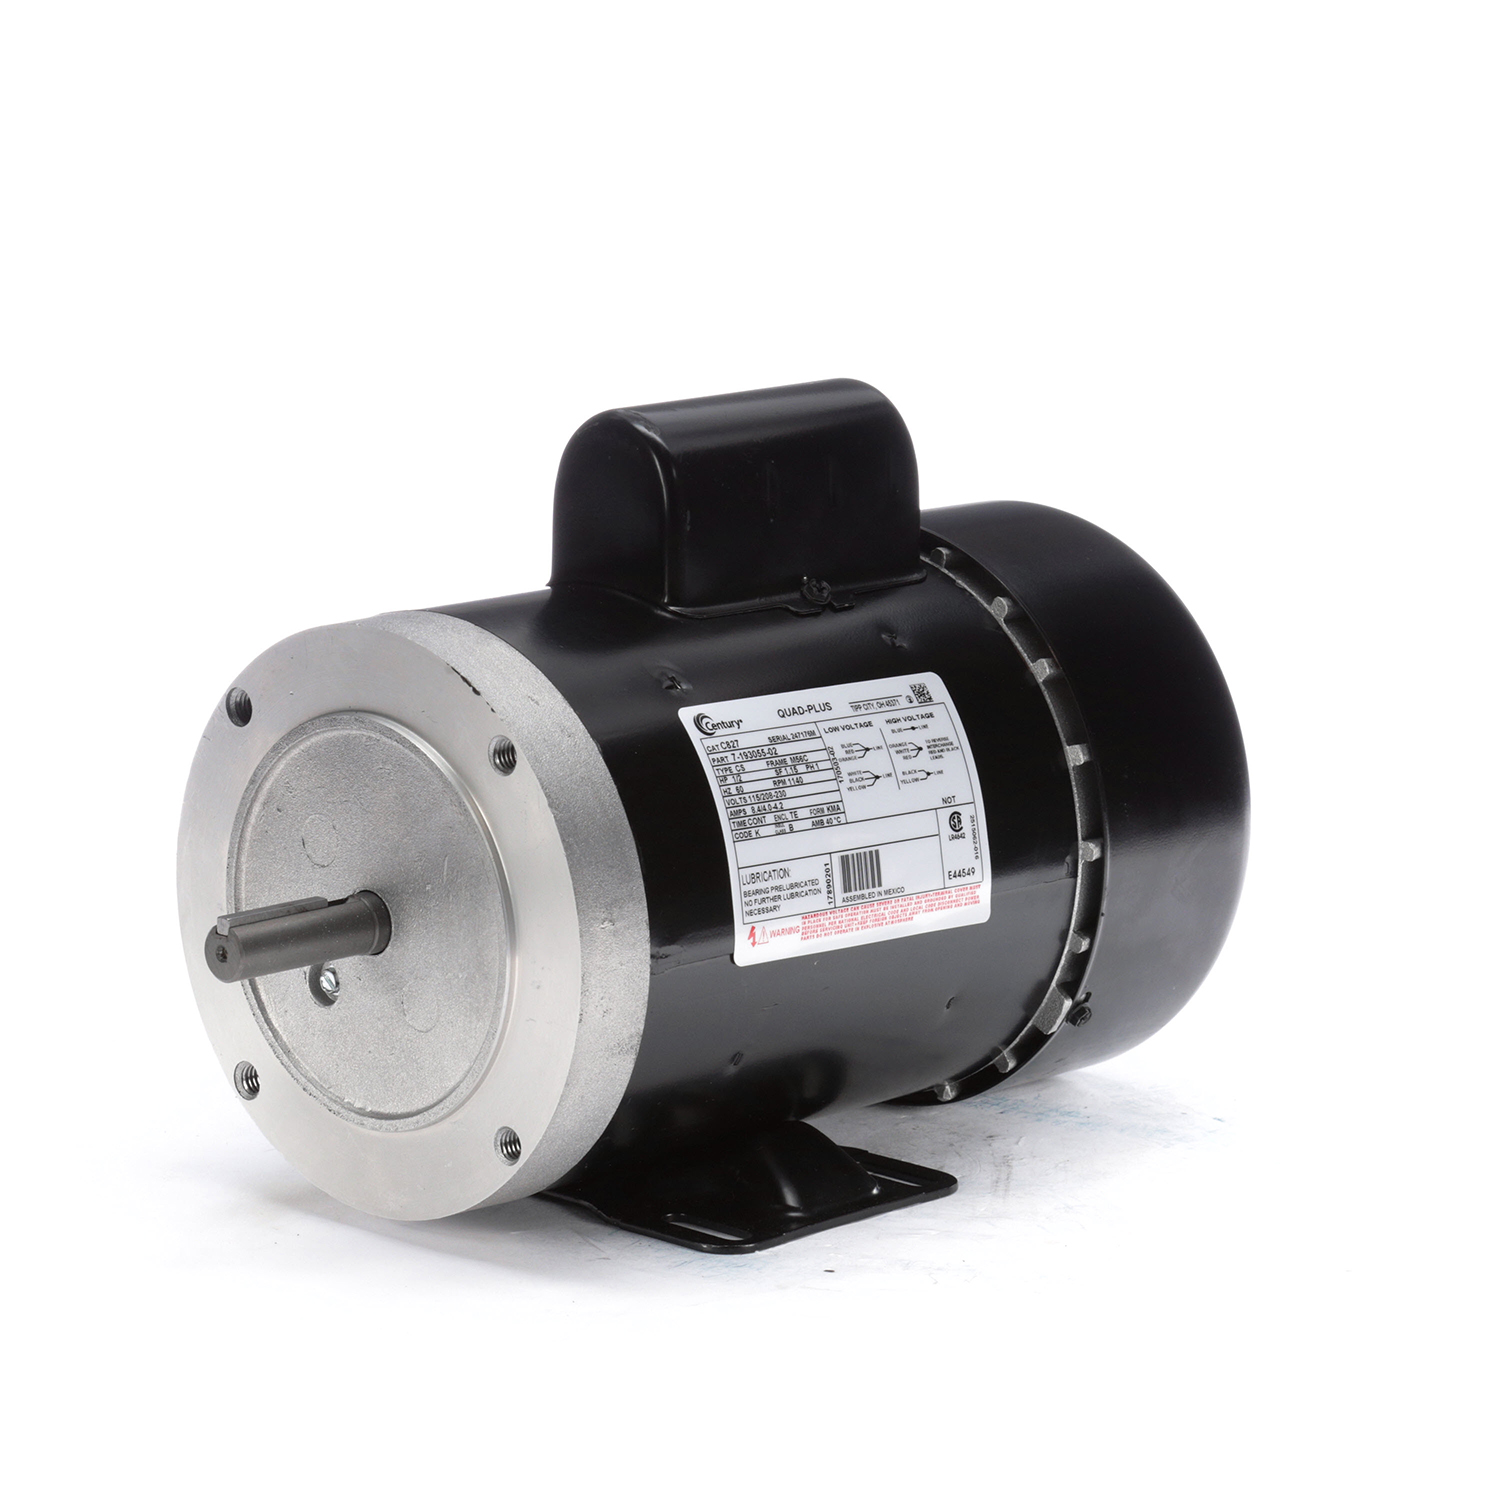 1/2 HP, 115/208-230 V, Totally Enclosed Fan Cooled (TEFC)